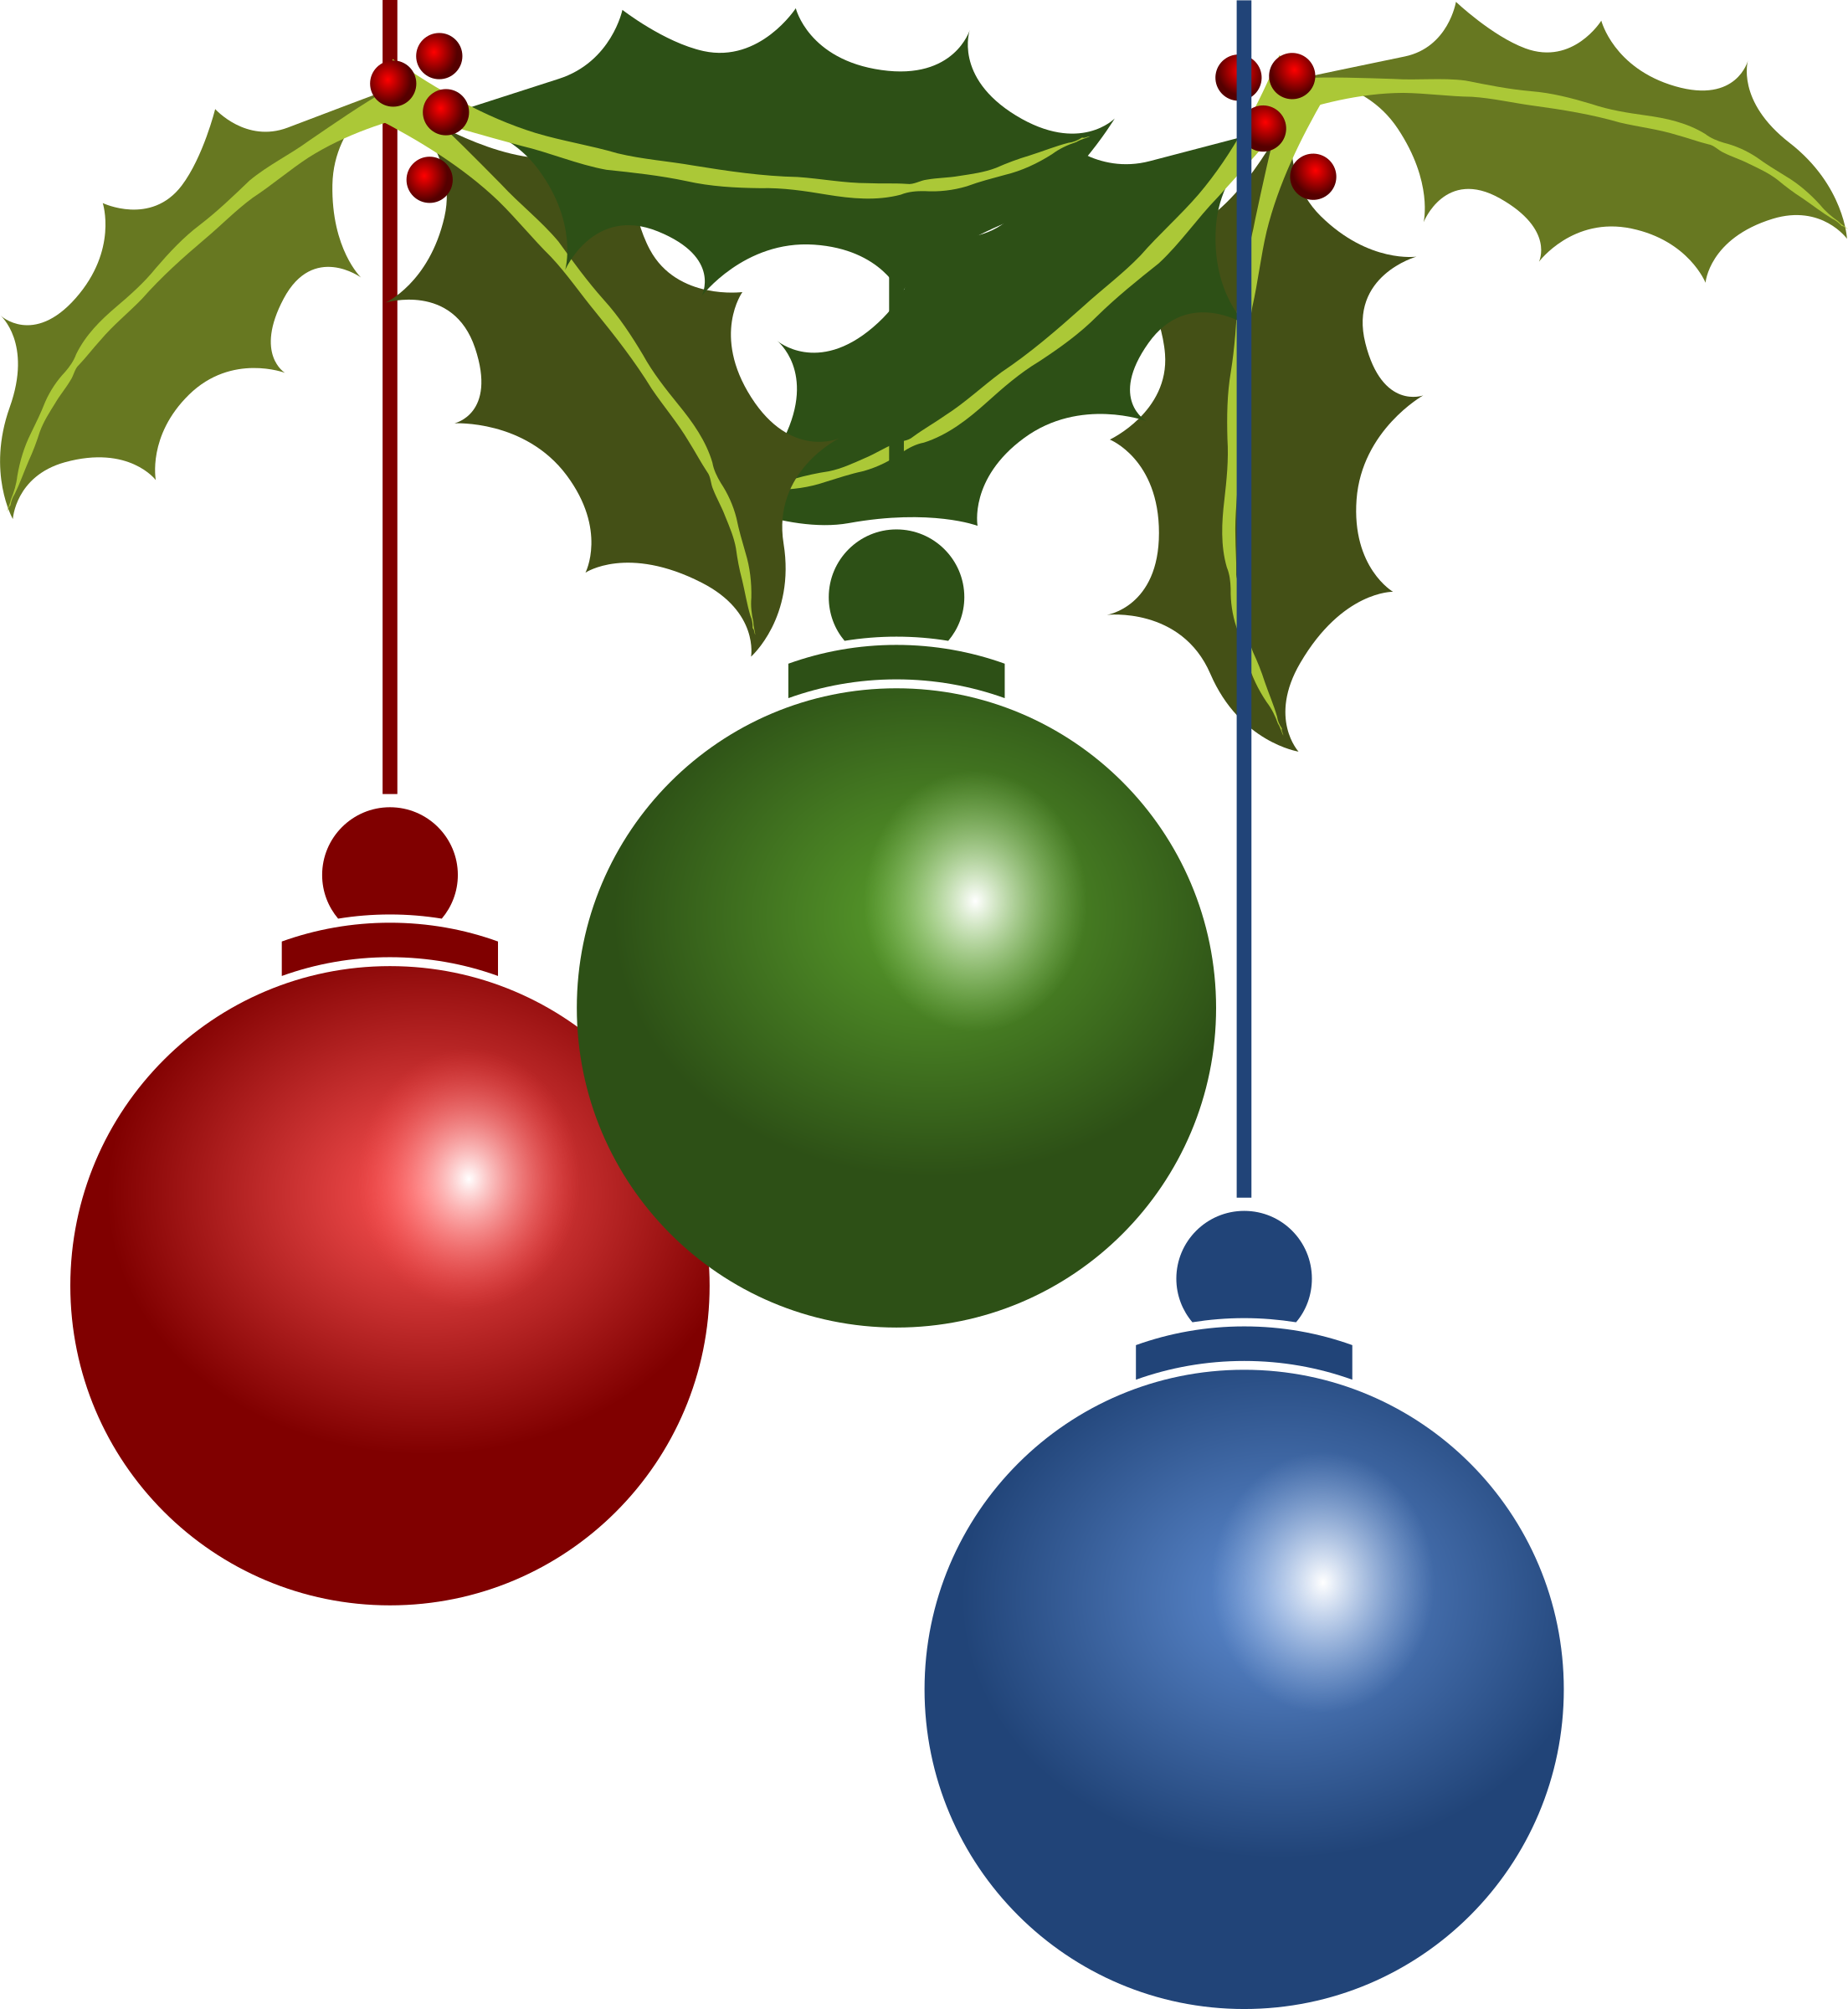 Email clipart christmas, Email christmas Transparent FREE.